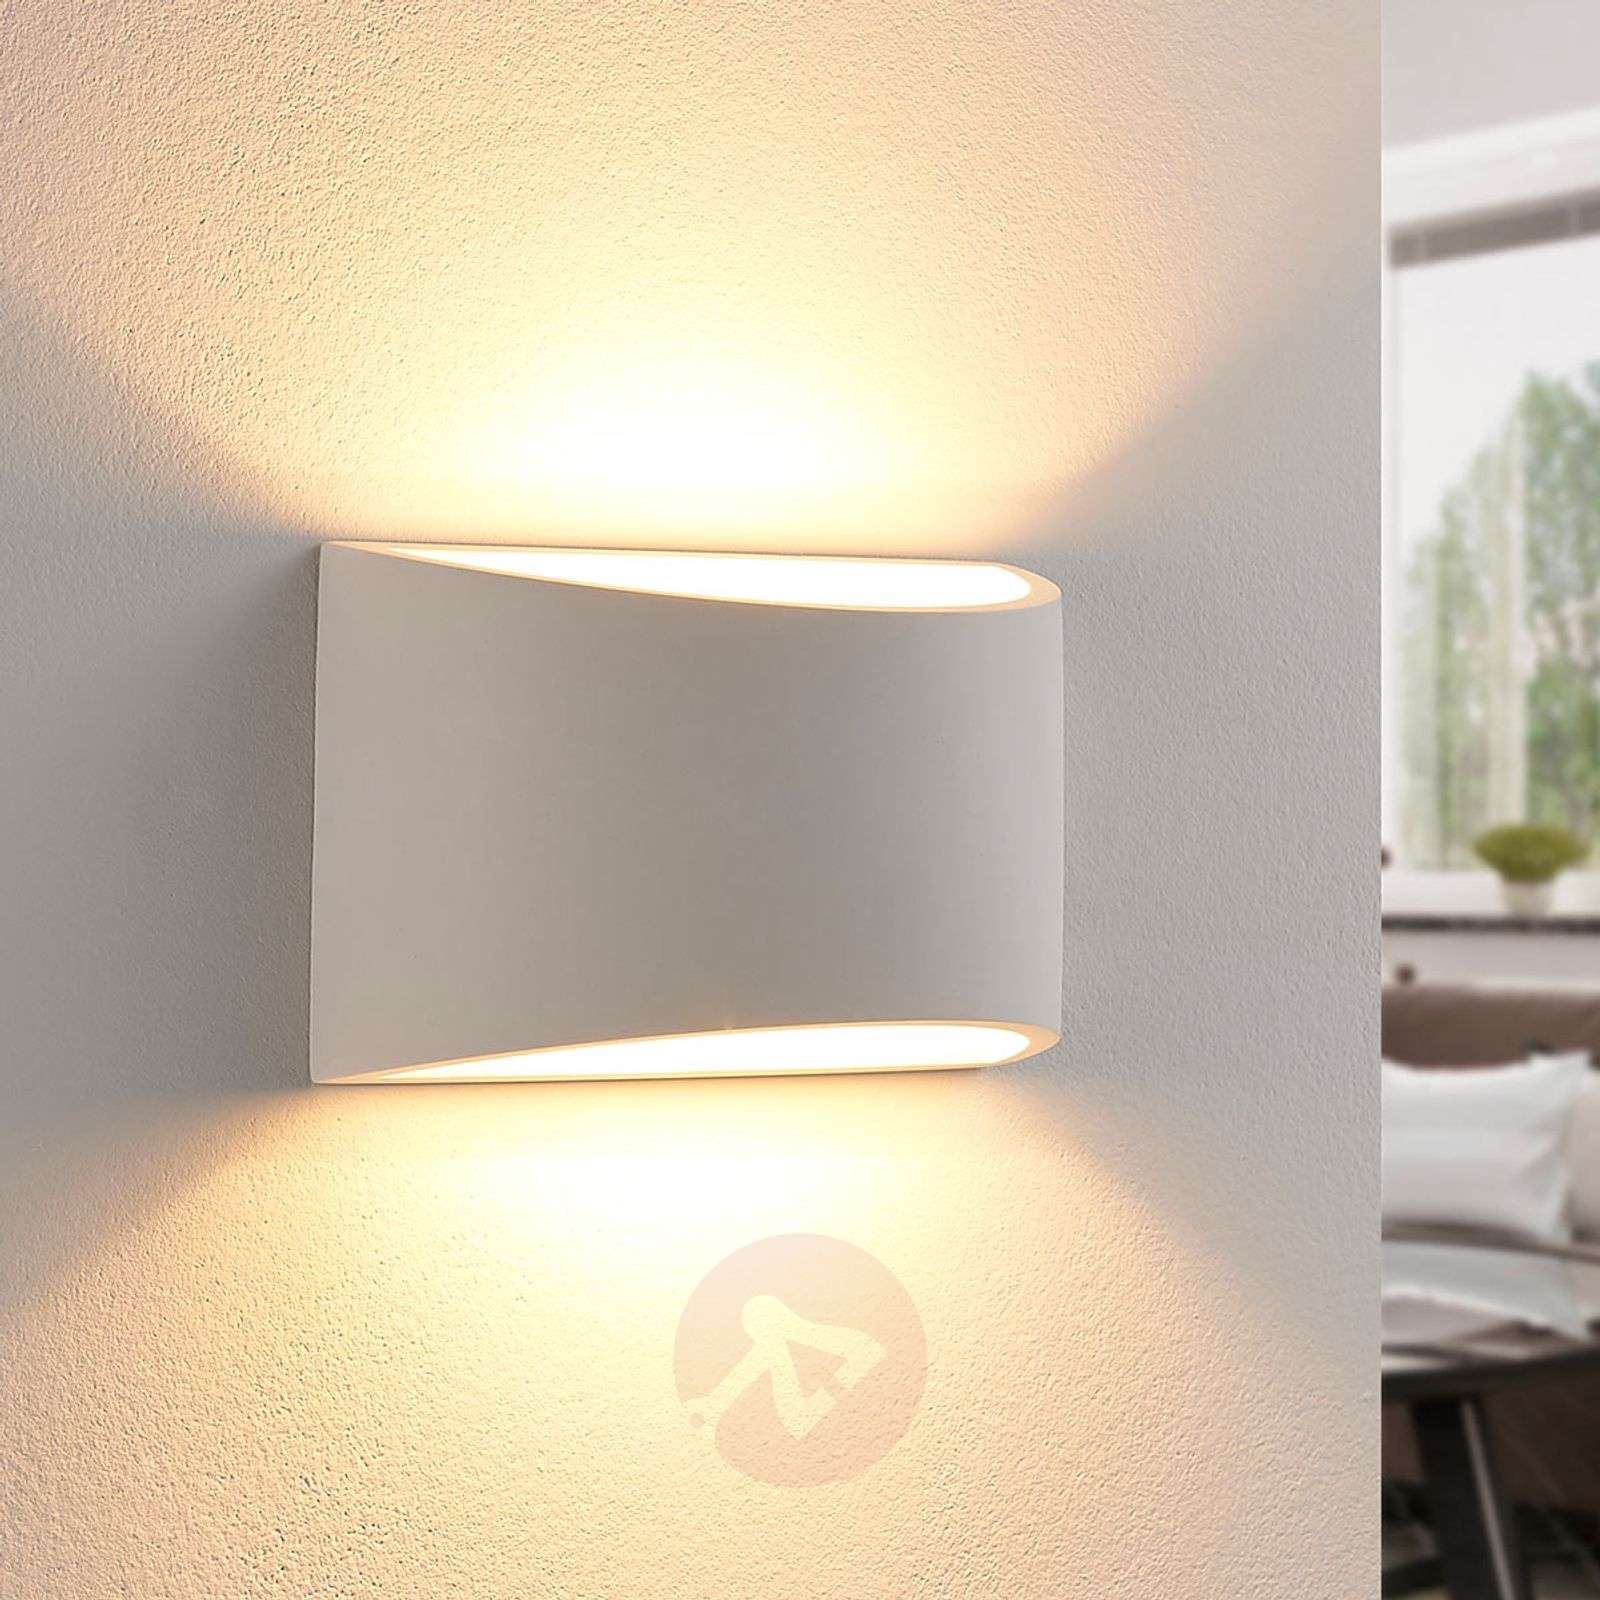 Elegant LED wall light Heiko made from plaster-9621352-02